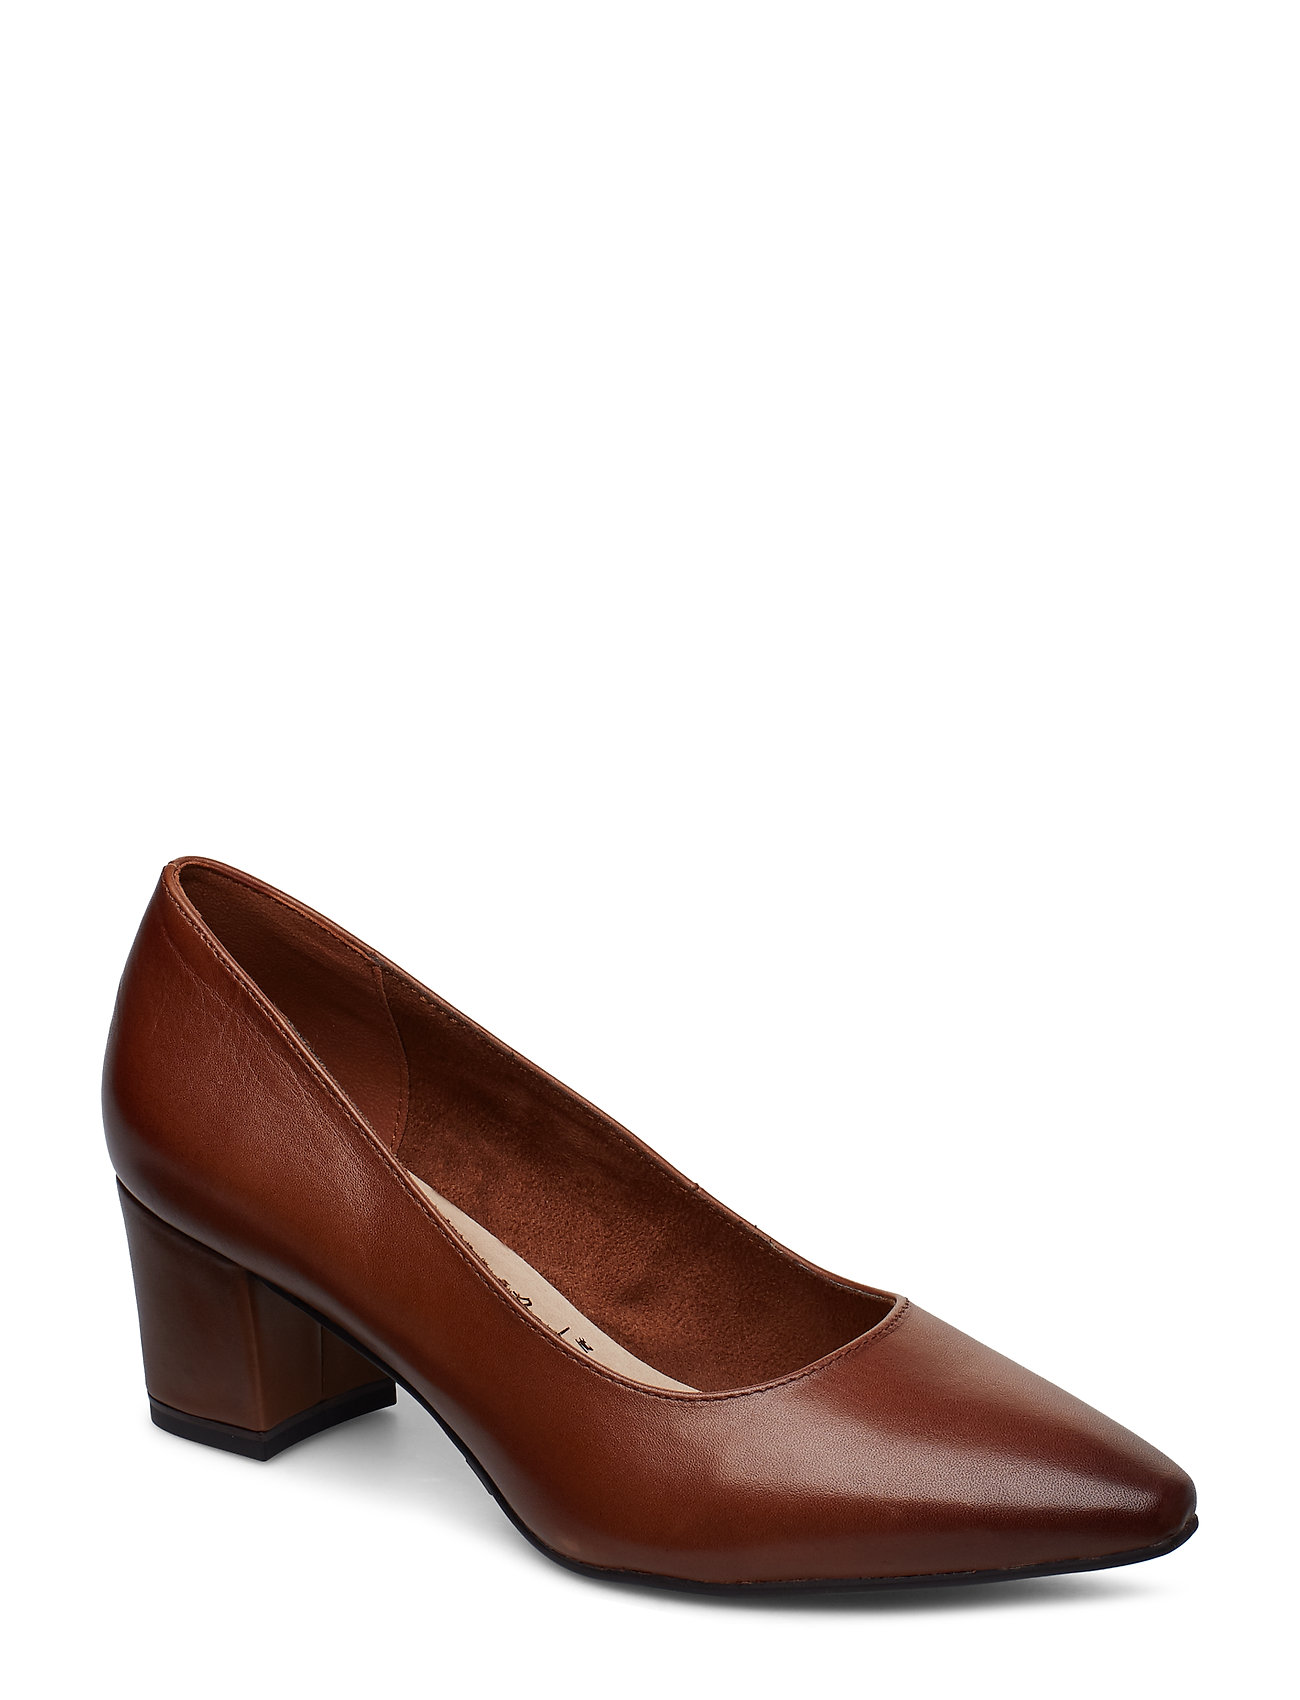 Tamaris Woms Court Shoe - MUSCAT LEATHER